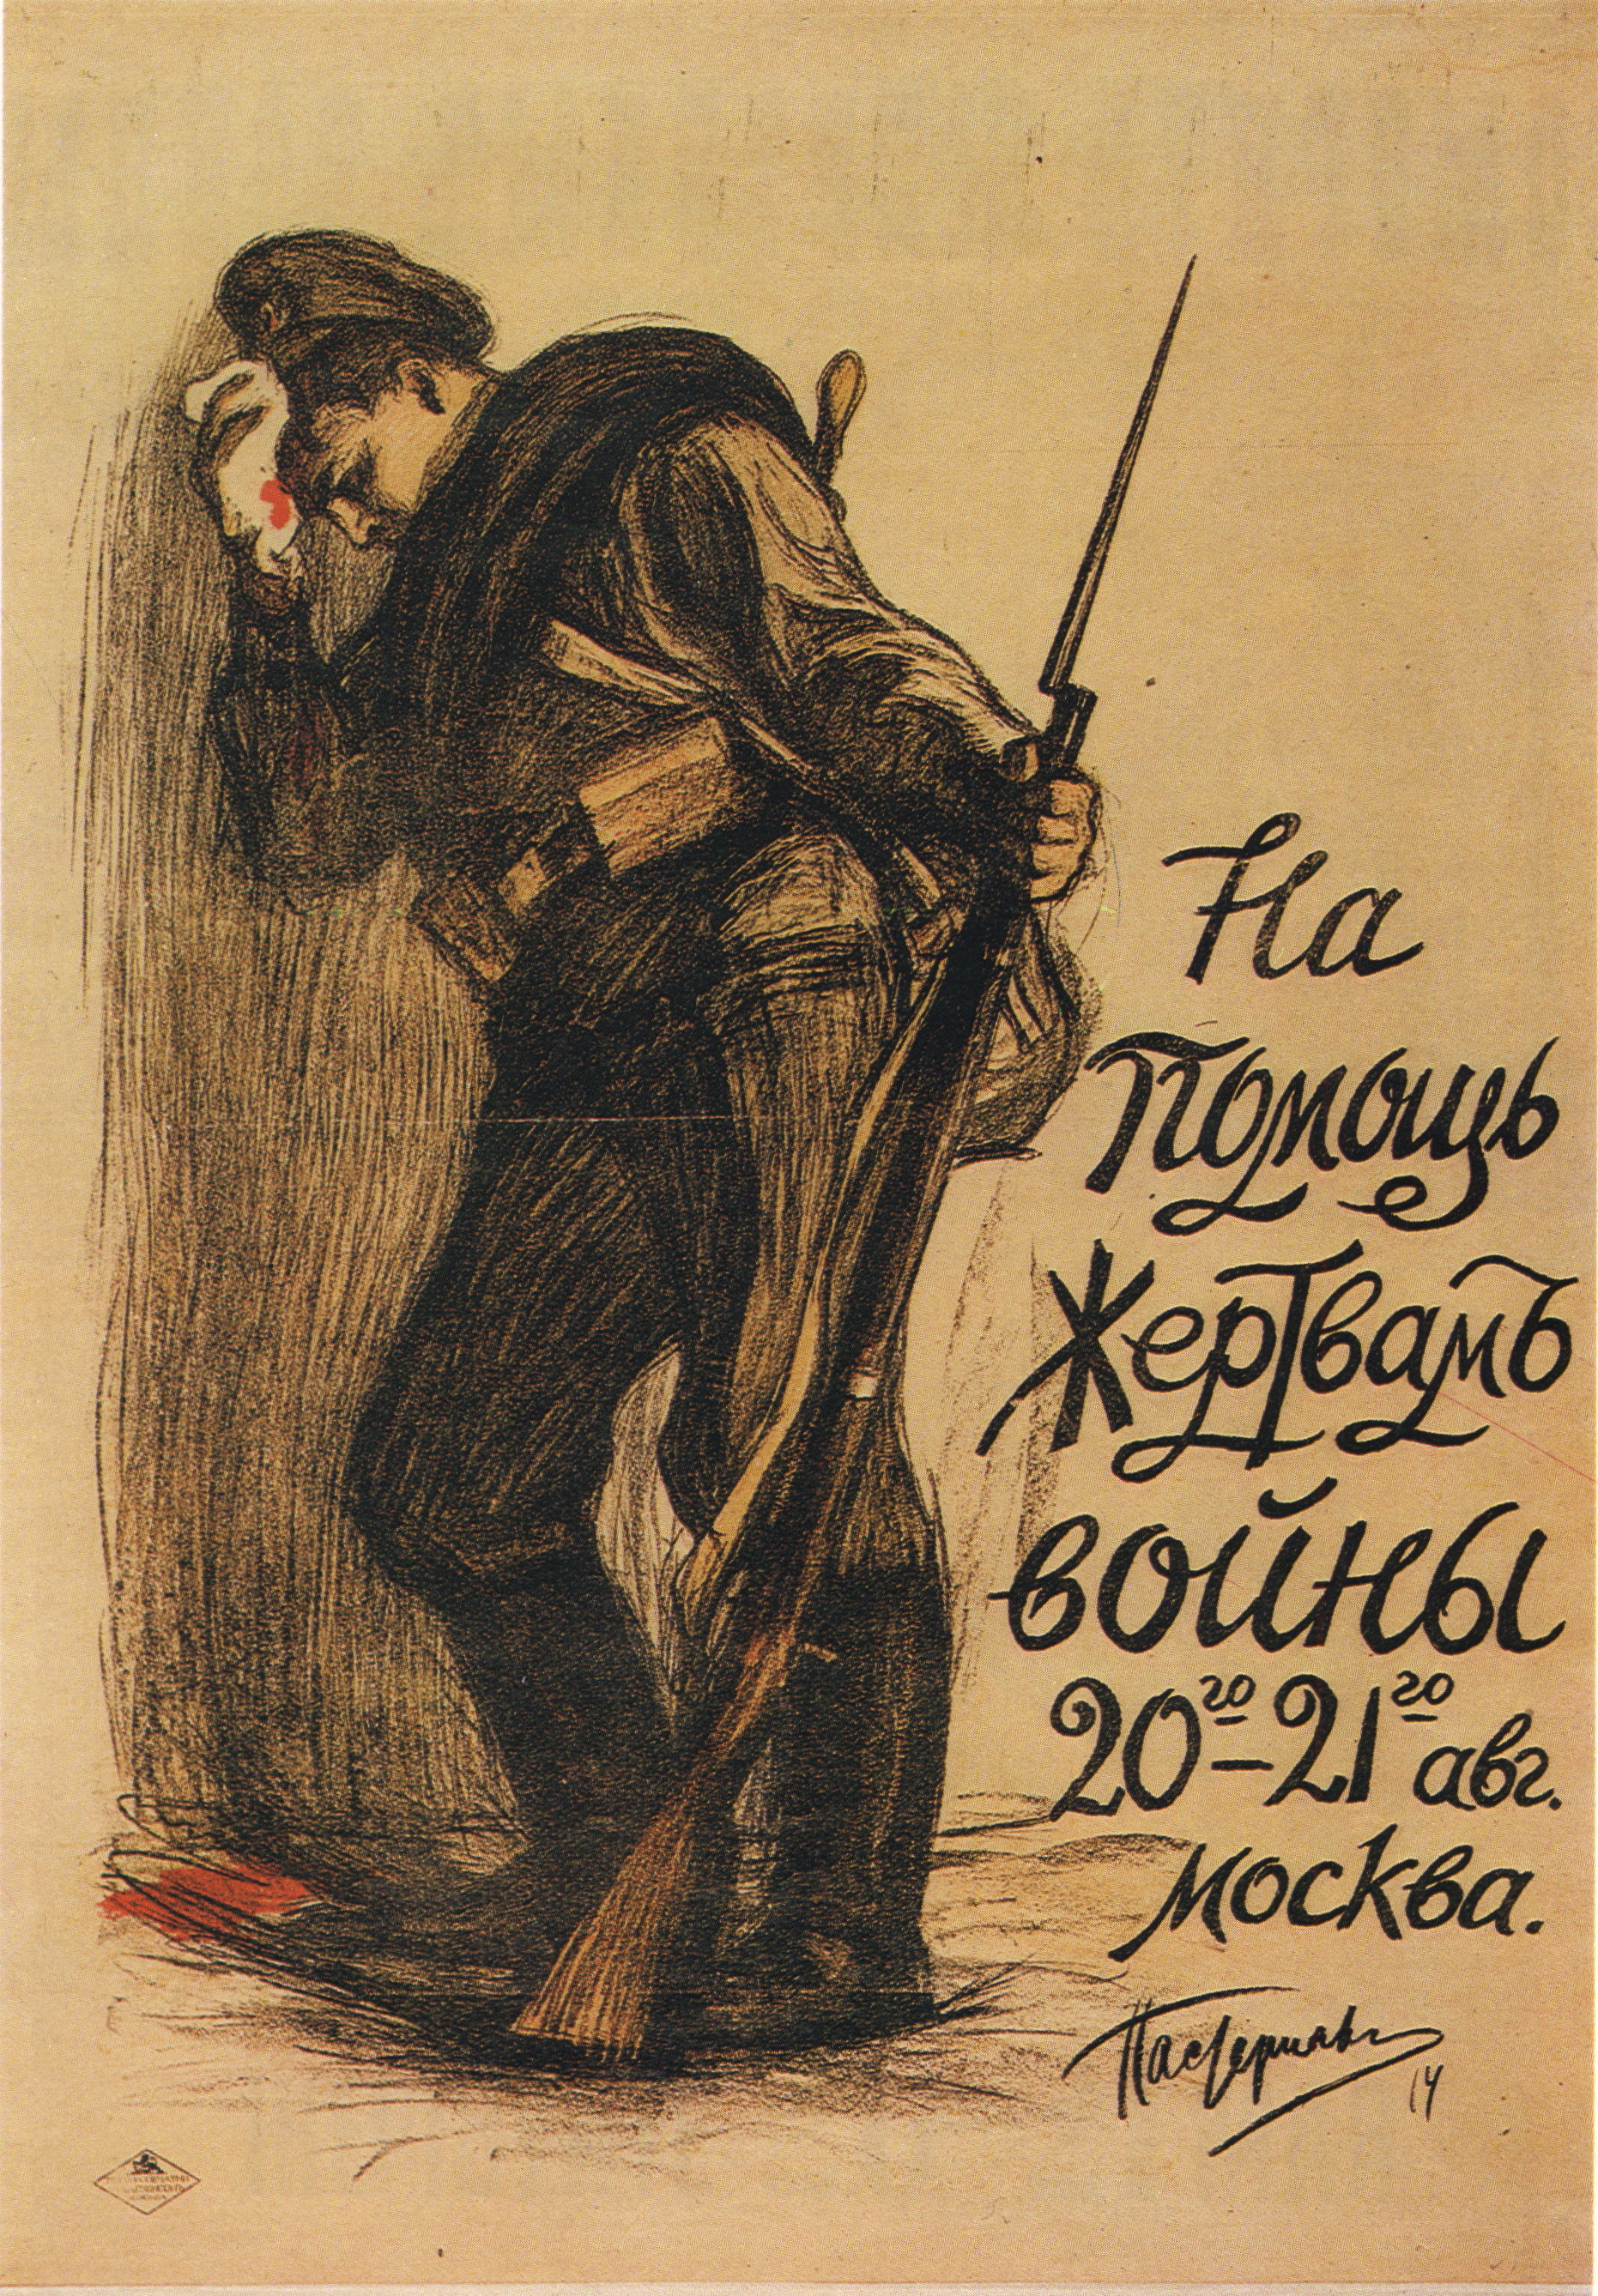 "<p>Russ­ian war pro­pa­gan­da. By Leonid O. Paster­nak — <a href=""https://commons.wikimedia.org/wiki/File:Russian_poster_WWI_002.jpg"">Бабурина Н. И. Русский плакат первой мировой войны.</a> М.,&nbsp;<span class=""numbers"">1992</span>.</p>"